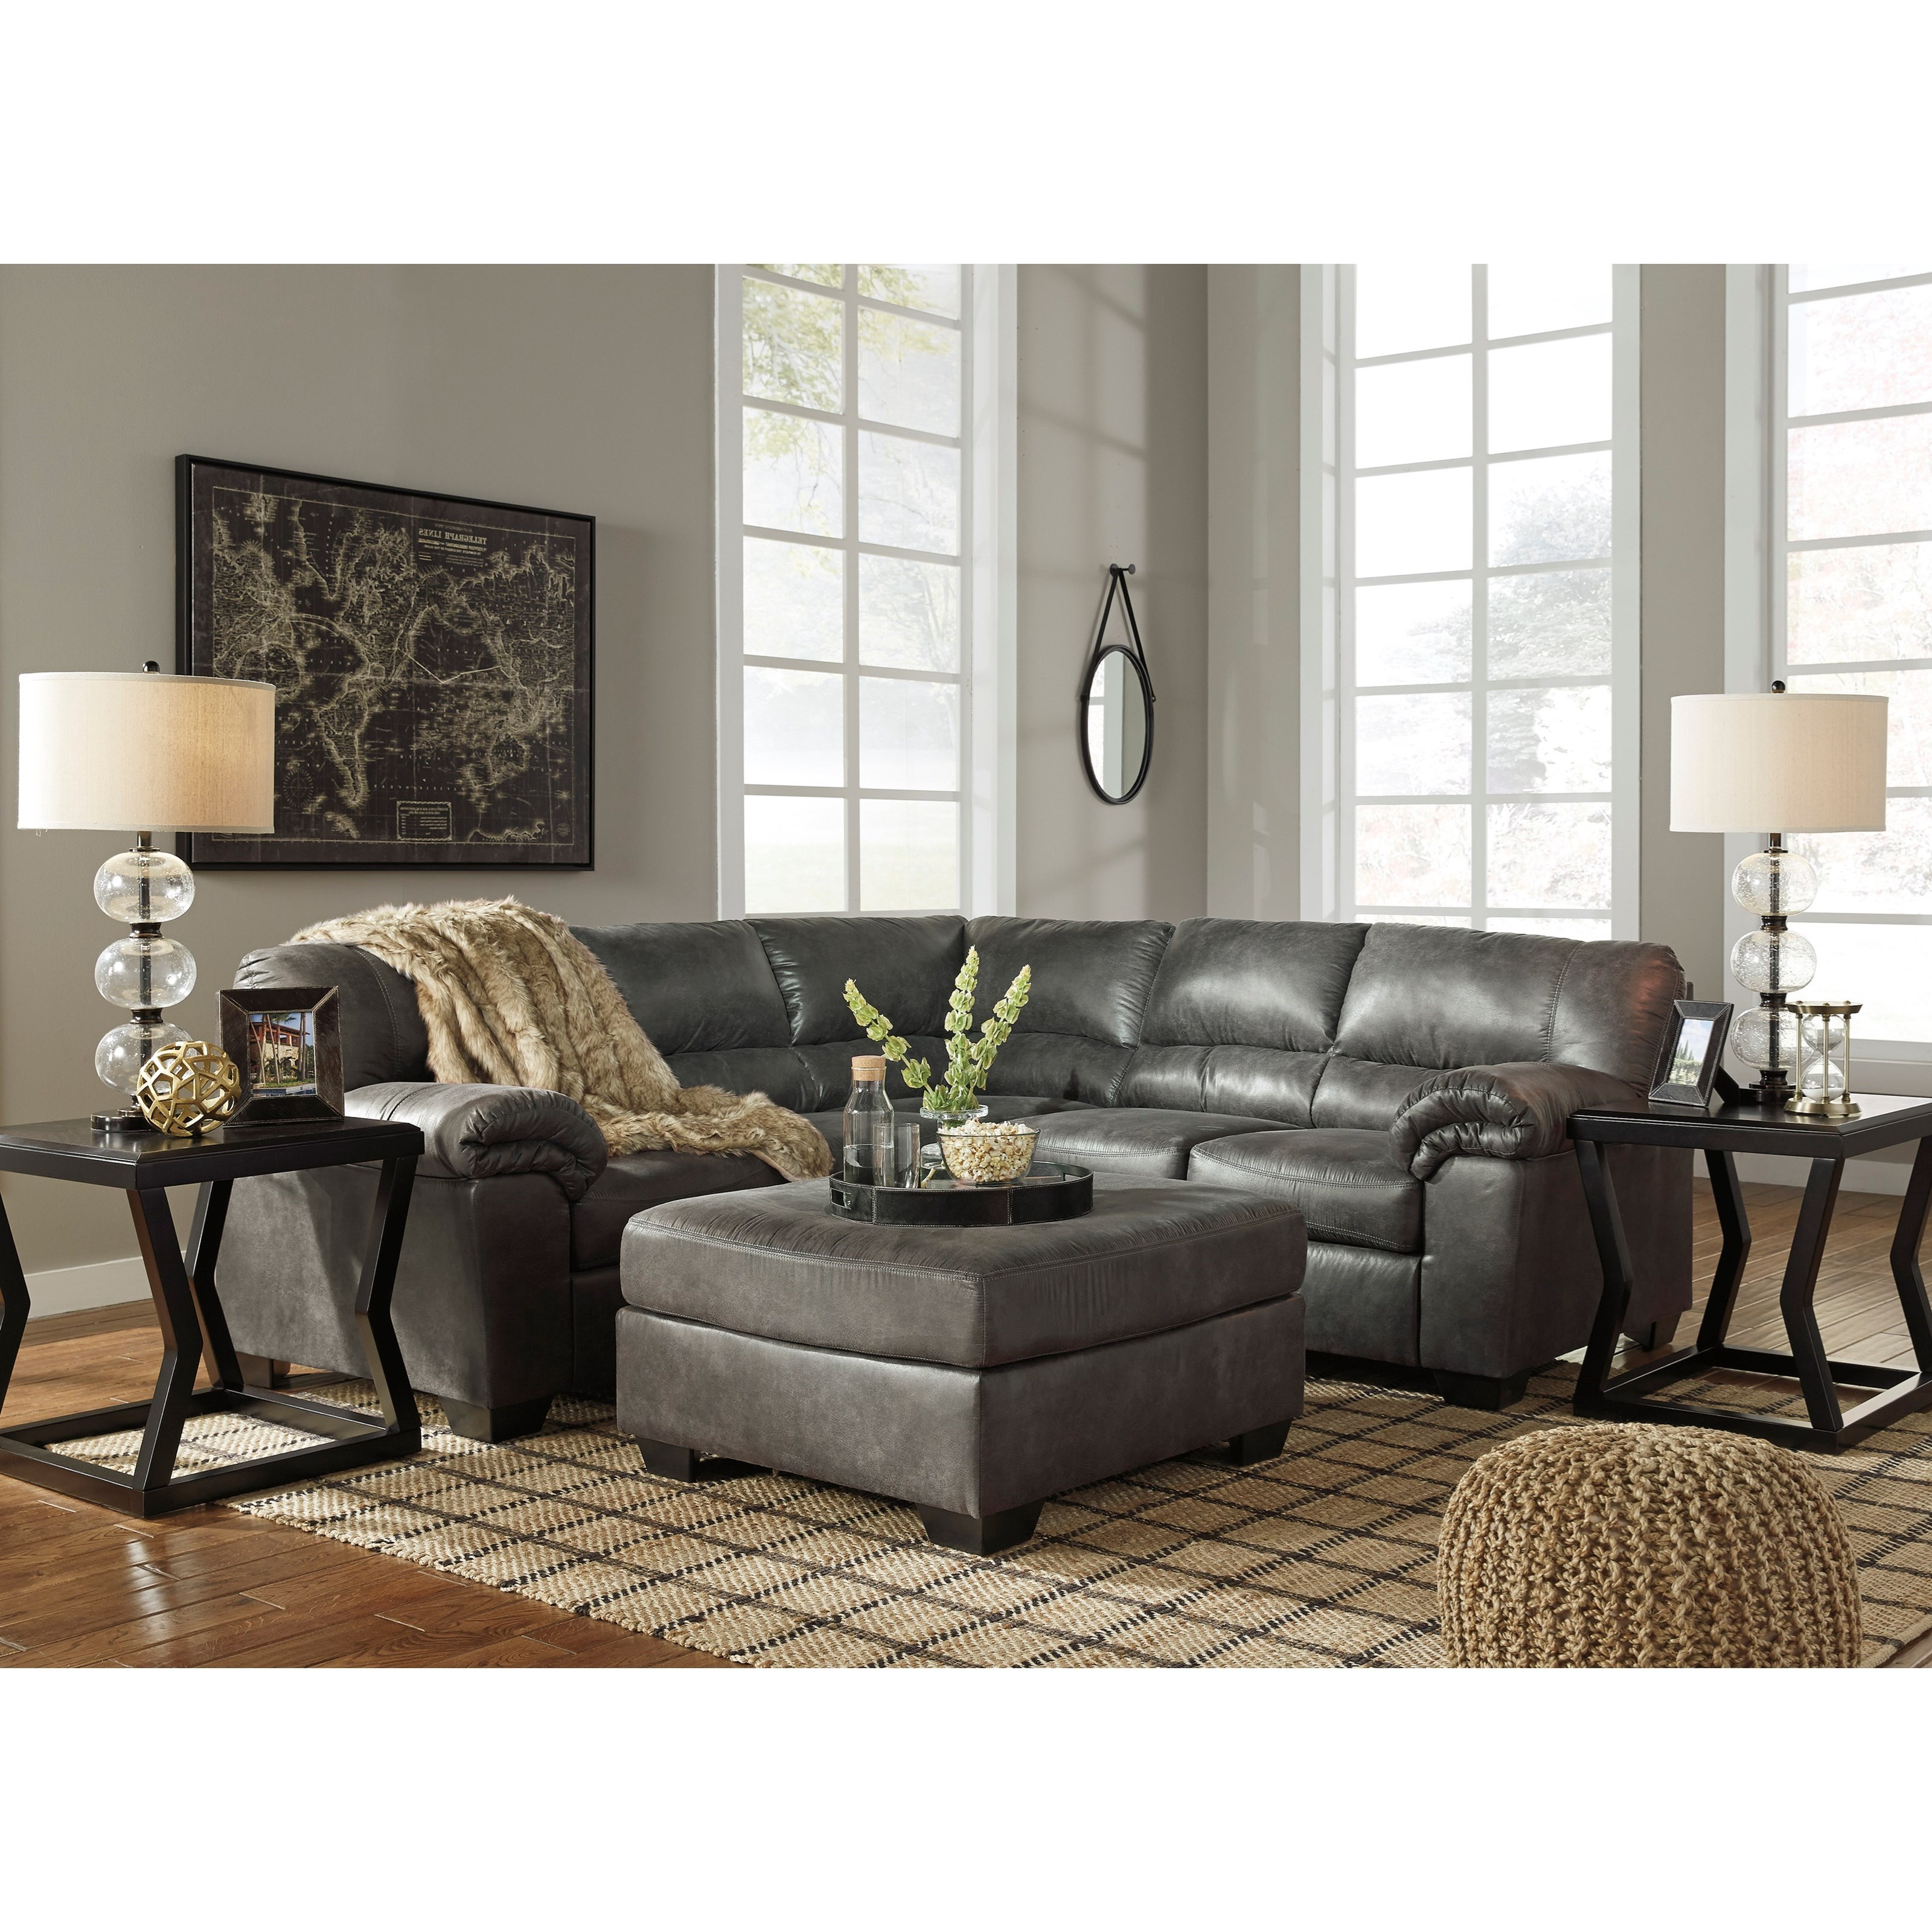 Bladen Stationary Living Room Group by Signature Design by Ashley at Sparks HomeStore